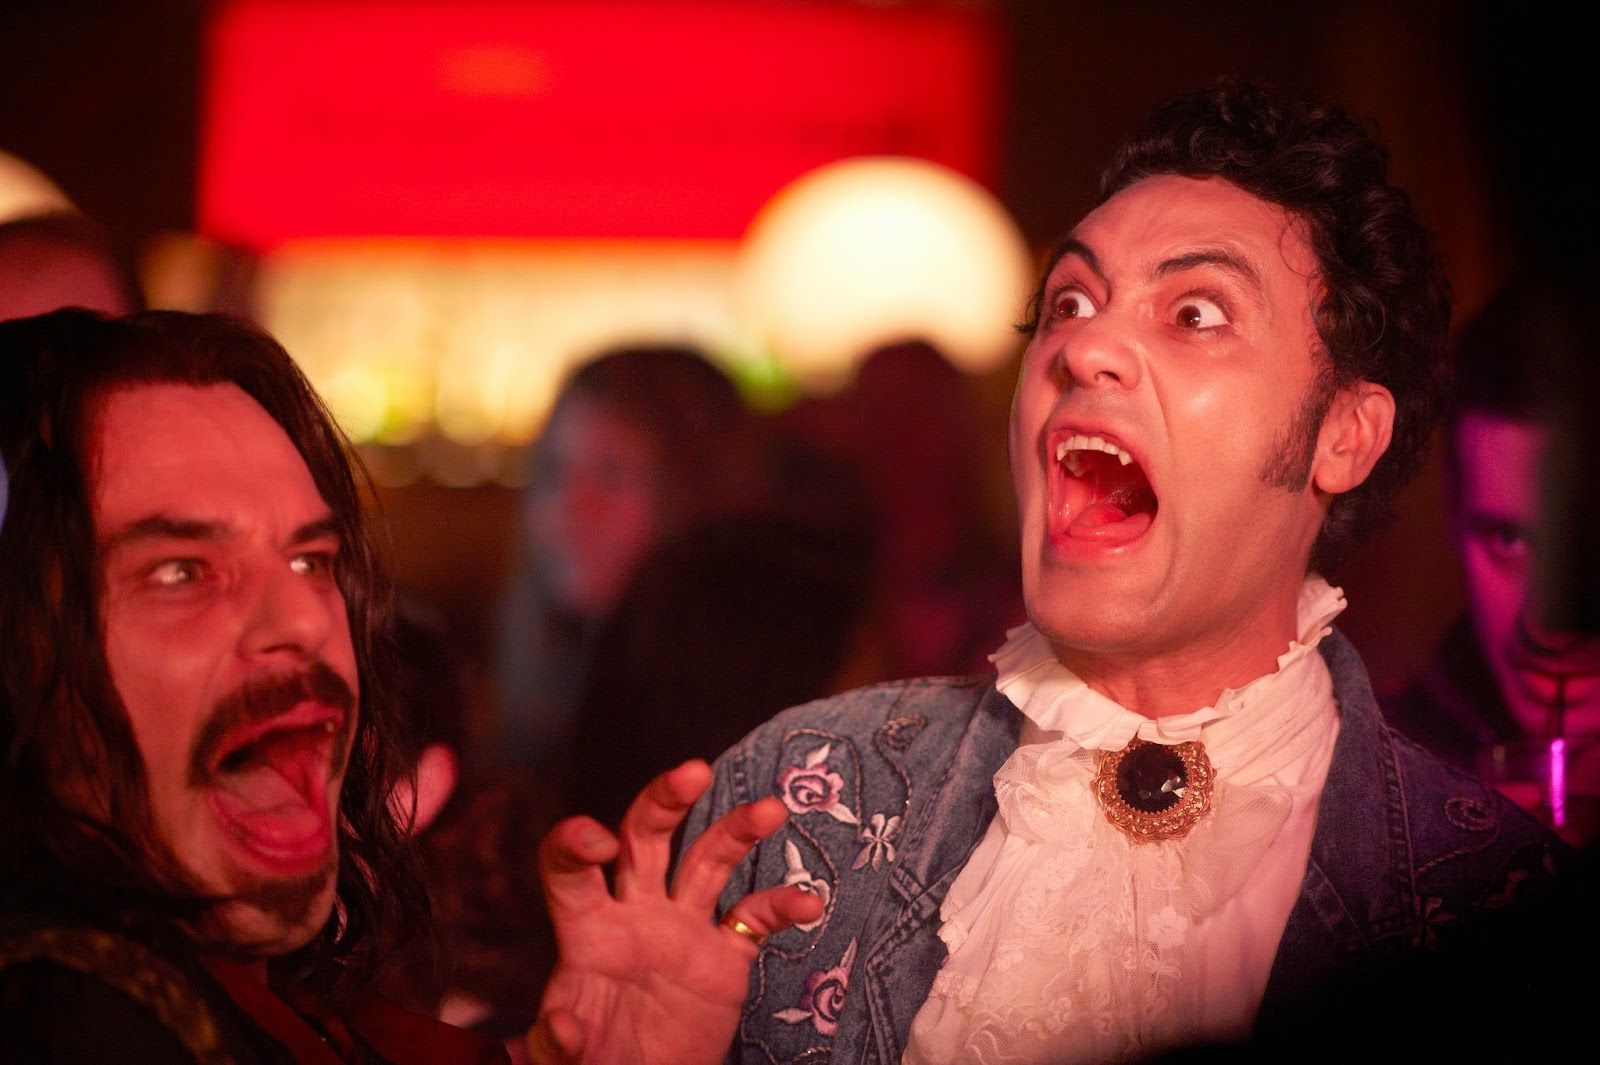 3 Zimmer Küche Sarg Netflix What We Do In The Shadows (2014) // Jul 2015 - Mixed Nuts Season | Taika Waititi, Film, Movies